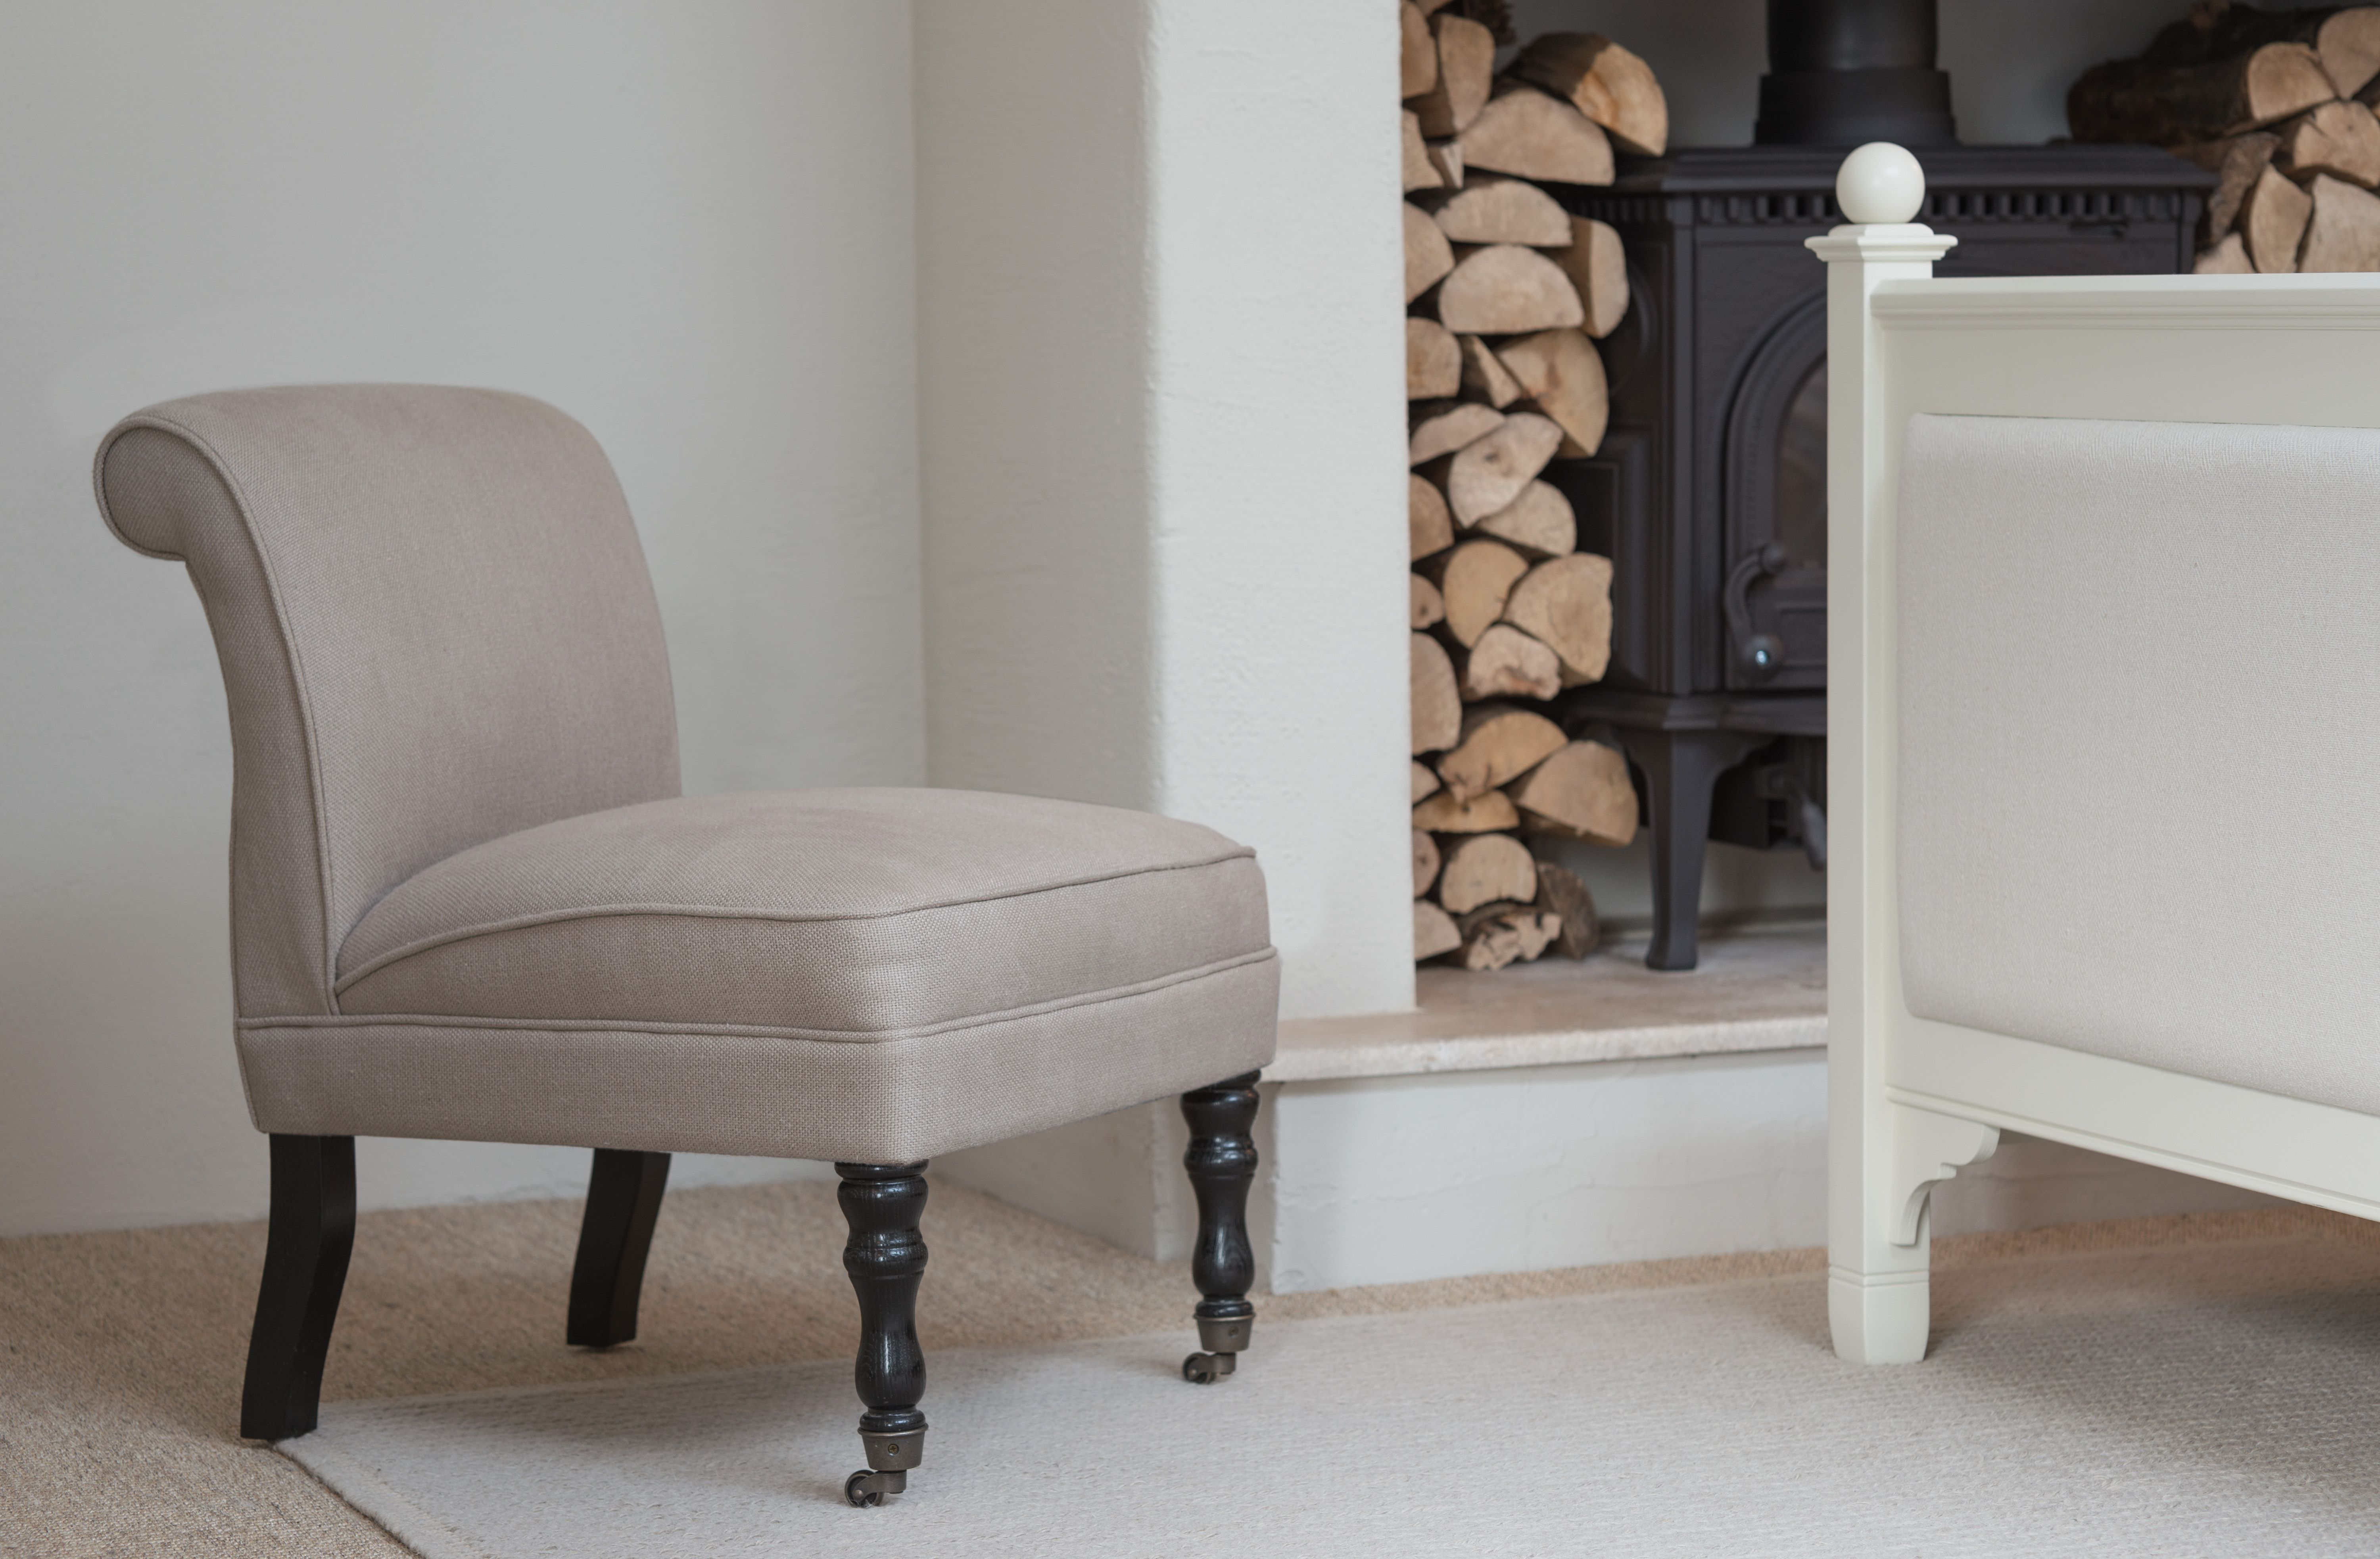 Neptune Madeleine chair | Armchairs. Would love a chair like ...